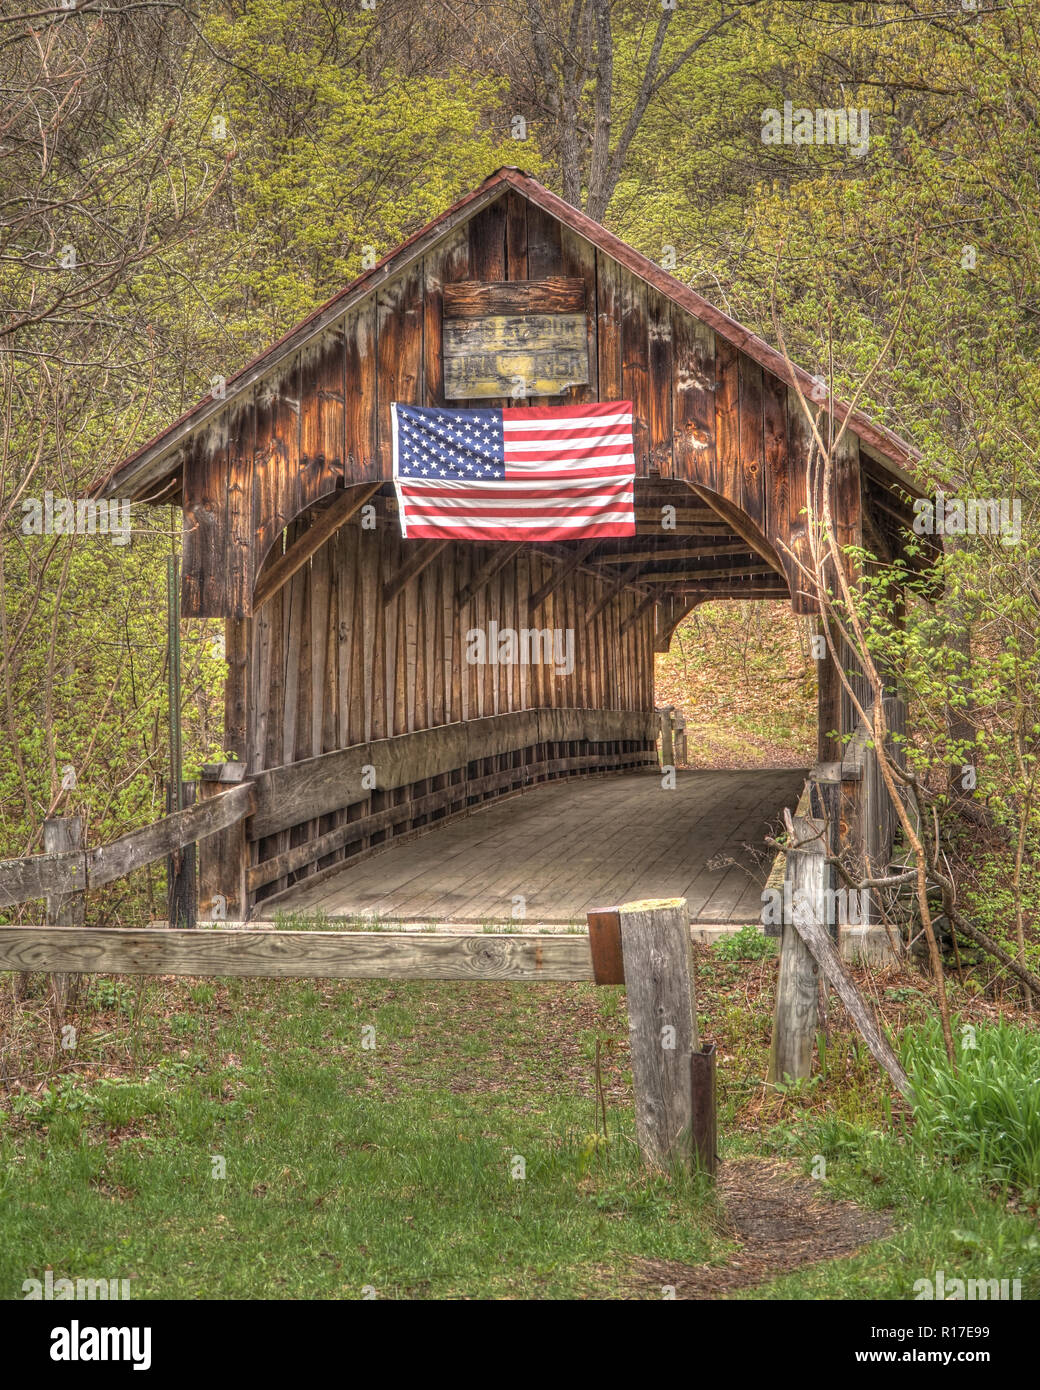 An abandoned covered bridge proudly fly's the American Flag on its weathered wood design in the early fall. - Stock Image